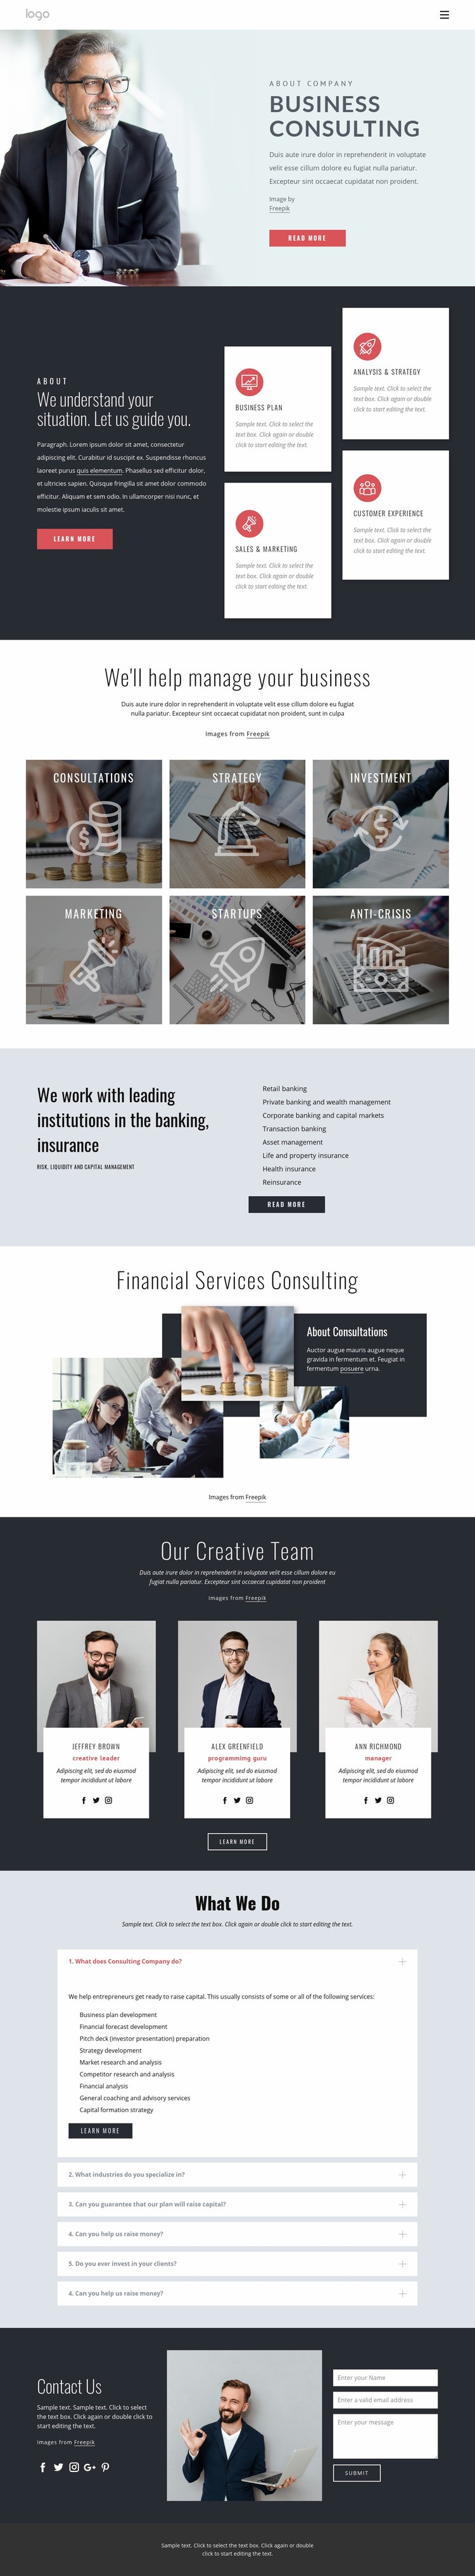 Successful financial strategy Homepage Design